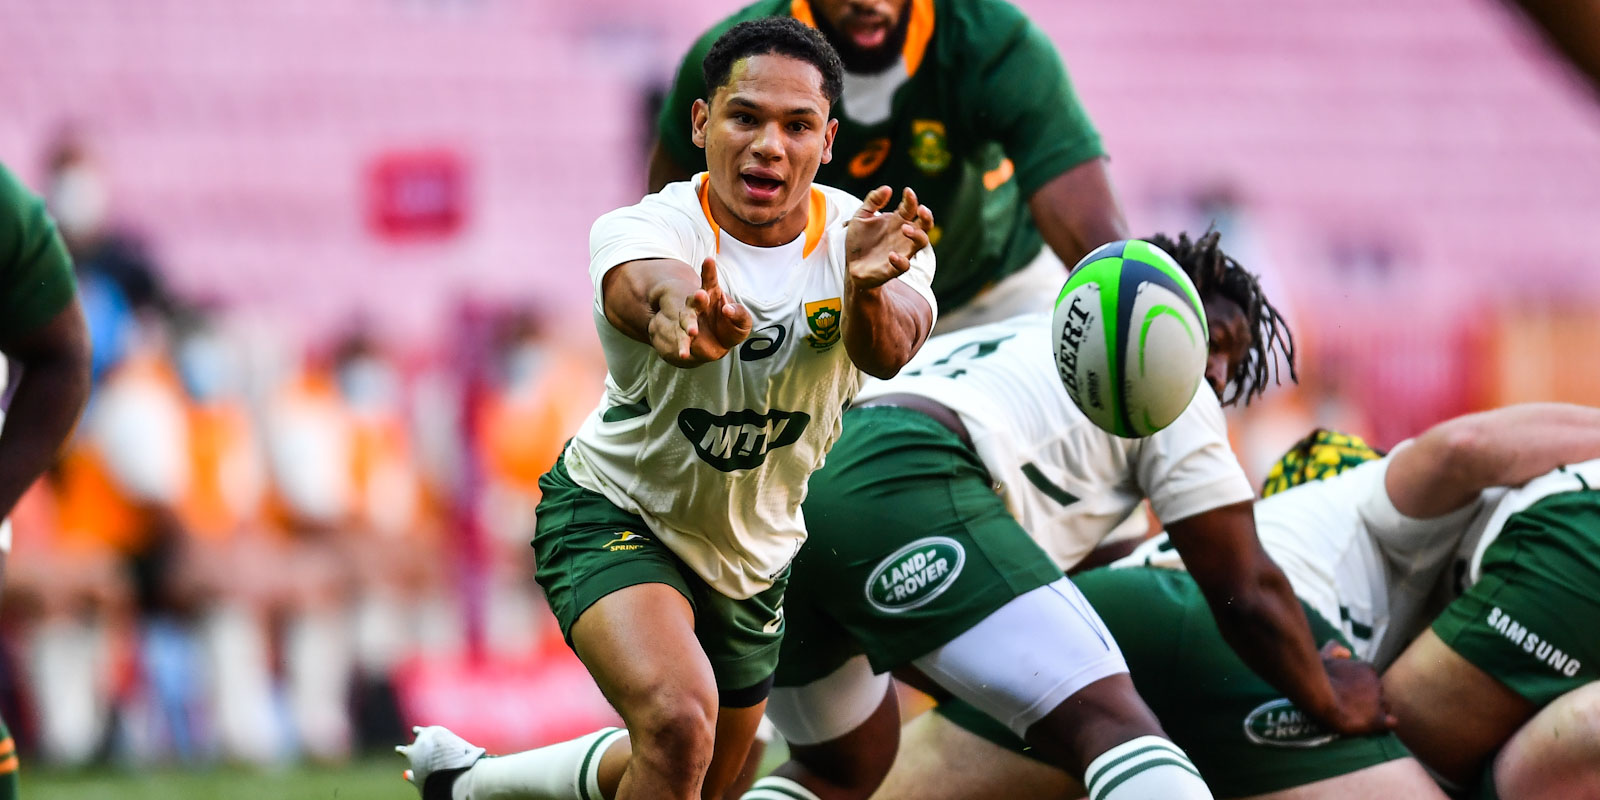 Herschel Jantjies gets the ball away for the Gold team.